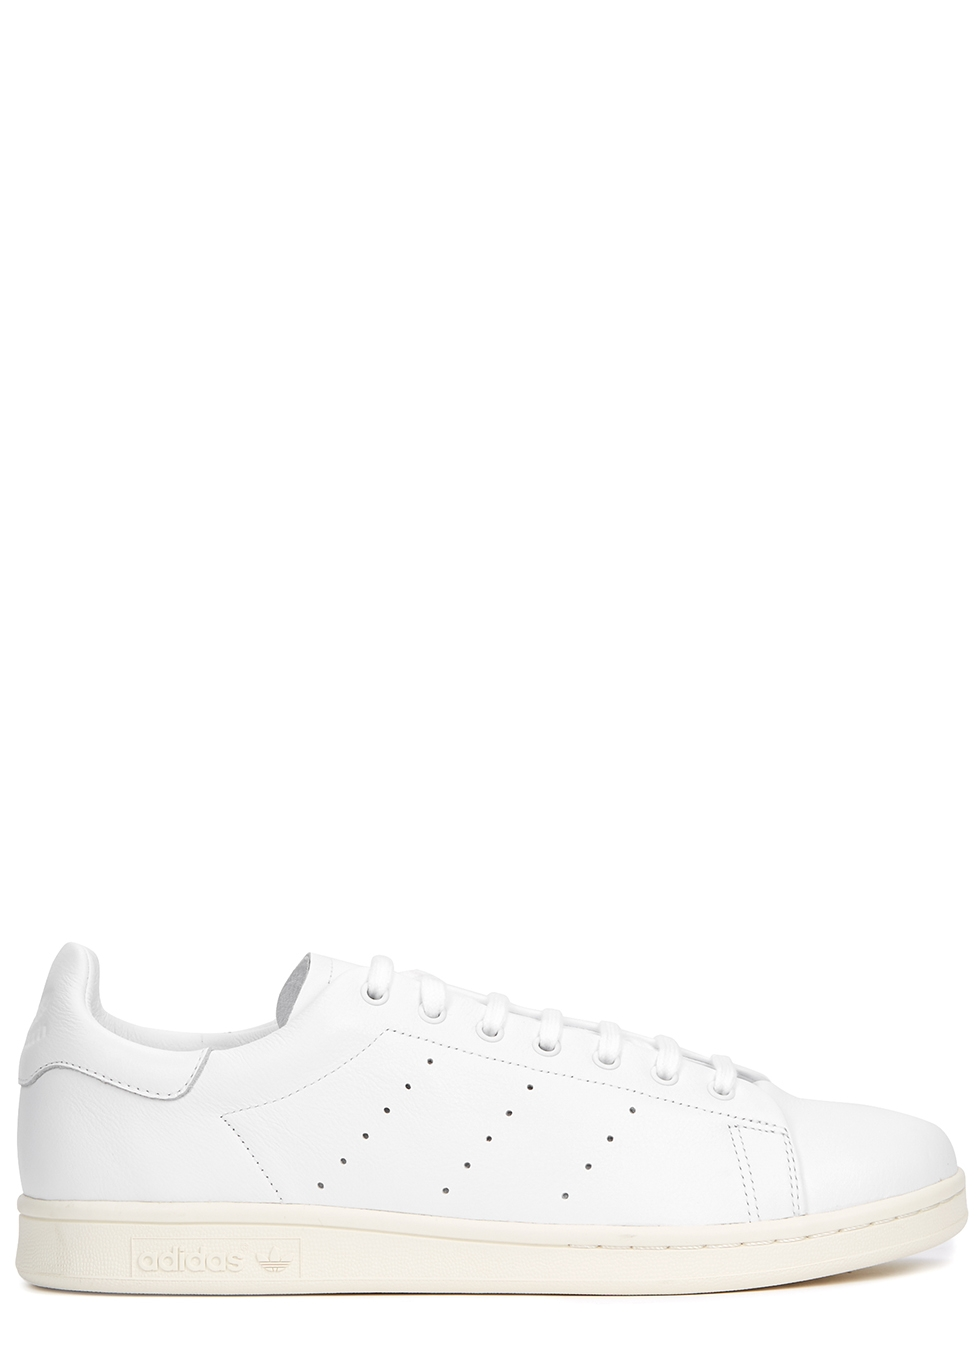 adidas Originals Stan Smith white leather trainers Harvey